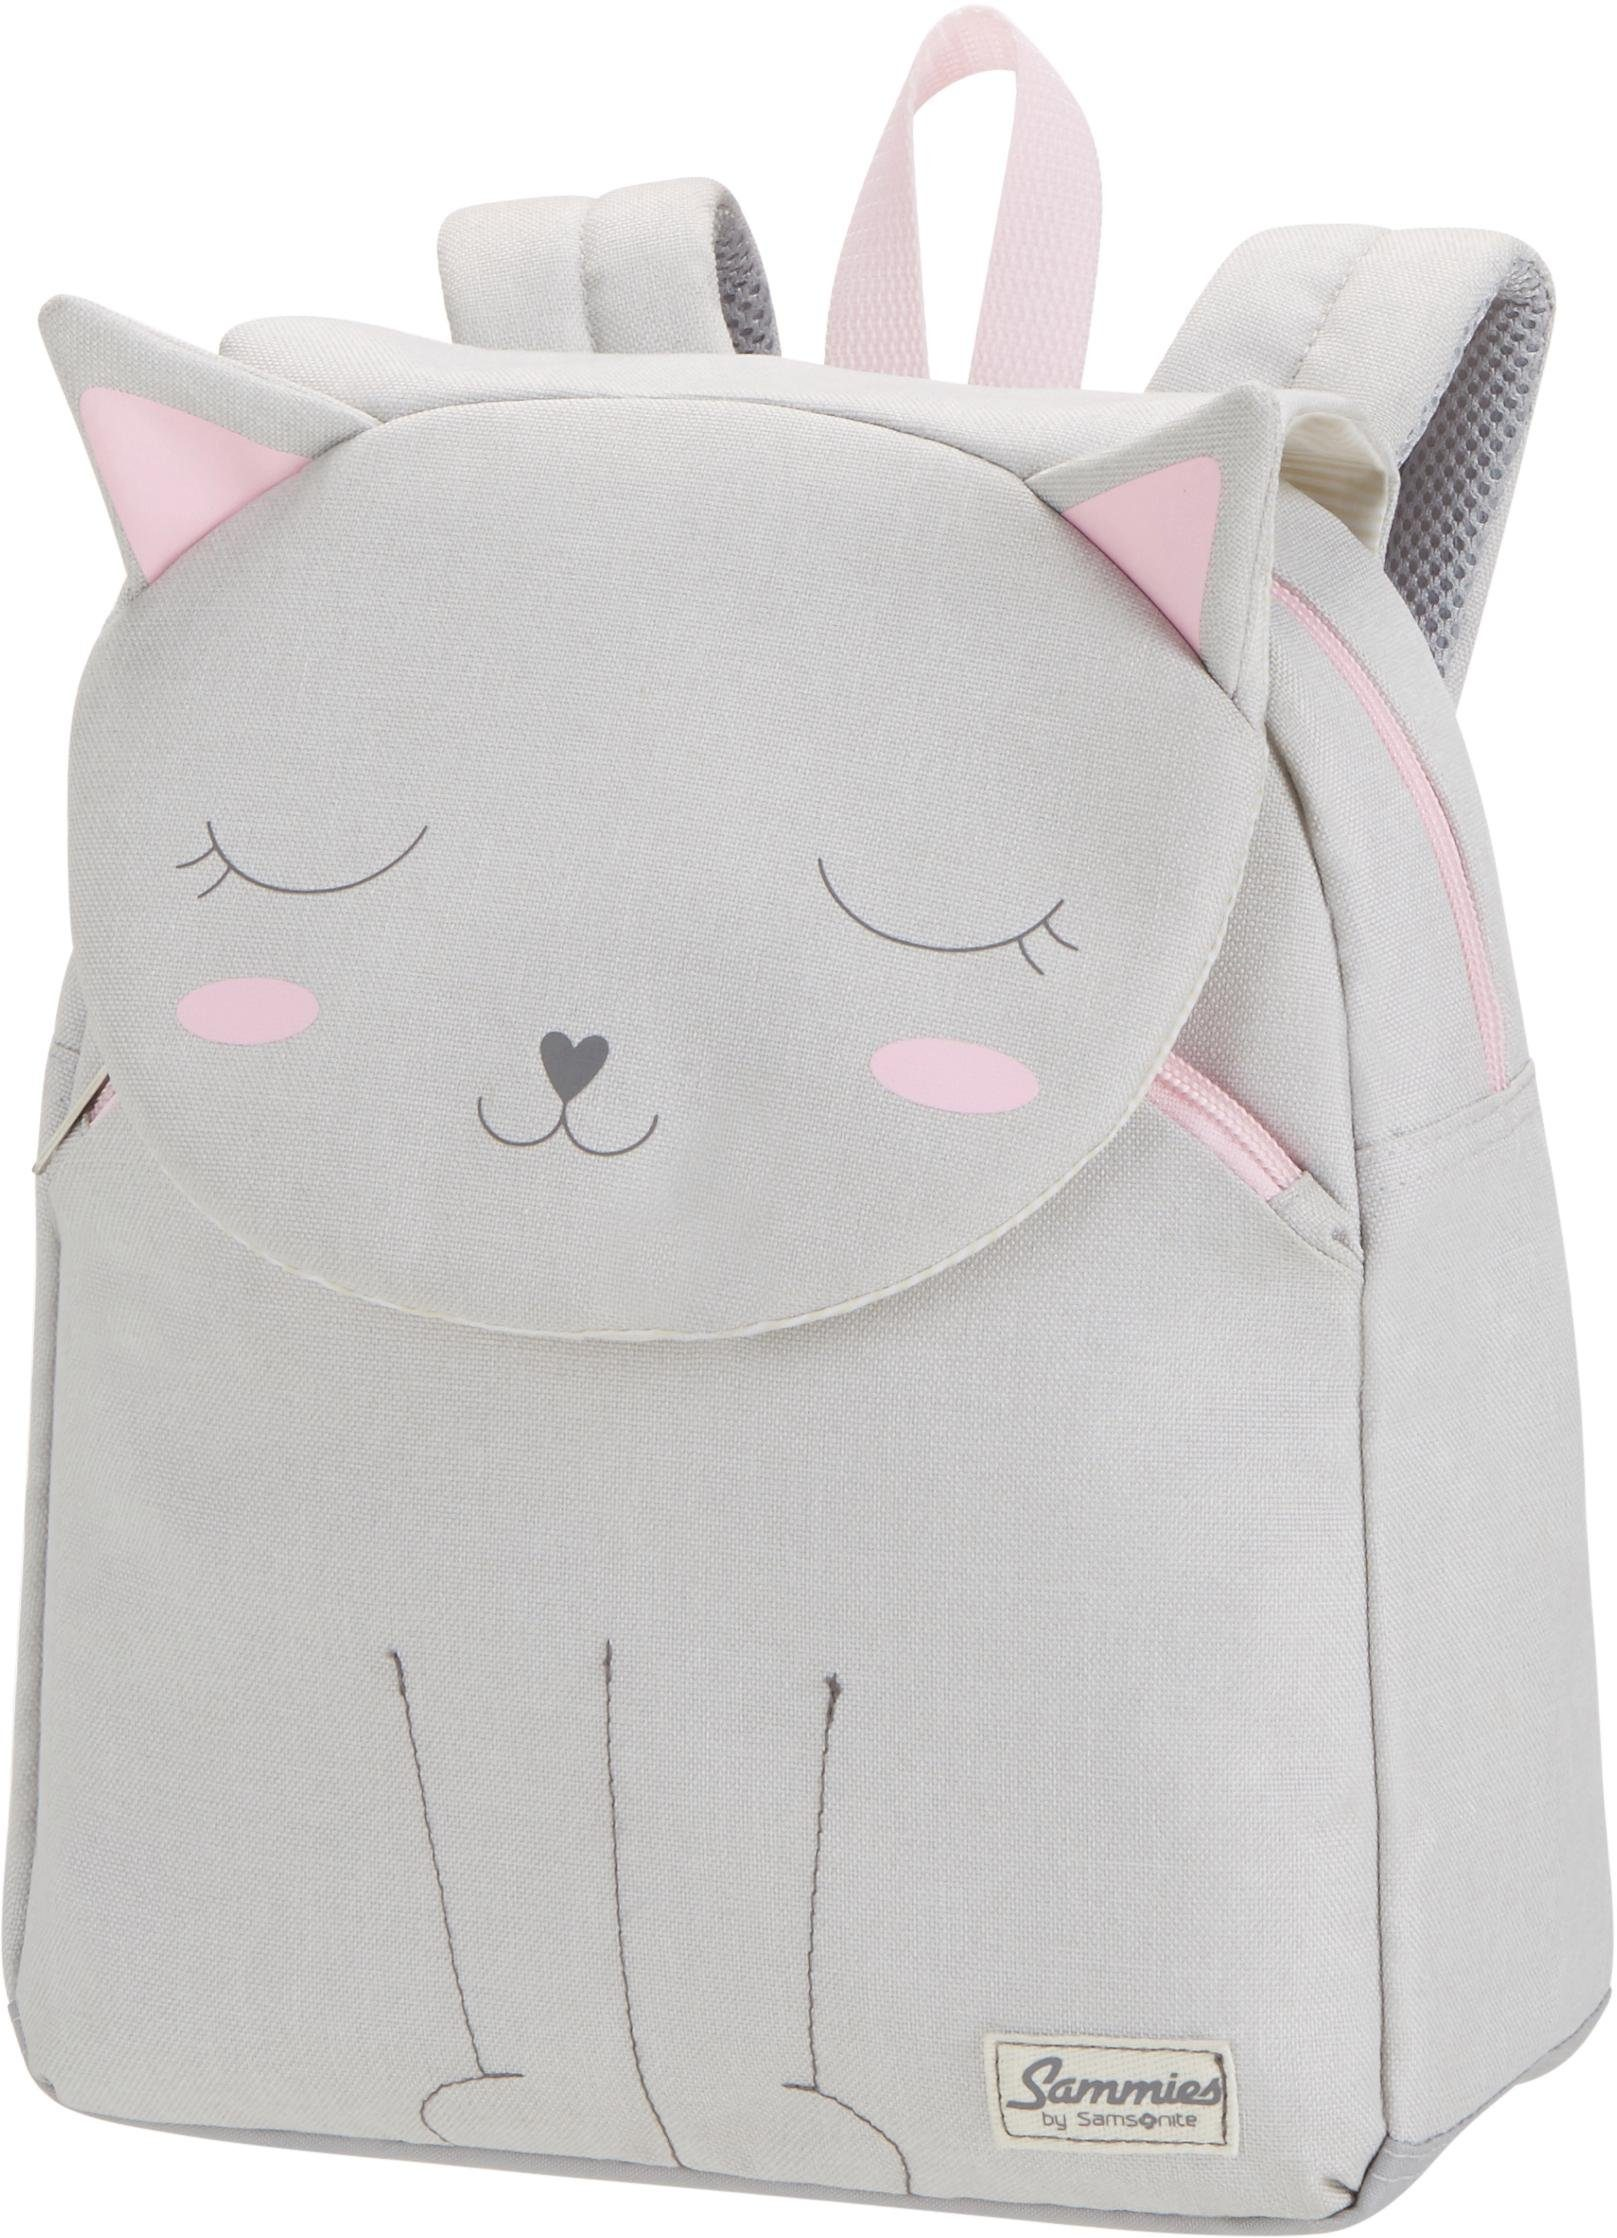 Samsonite Kindergartenrucksack, »Happy Sammies, Kitty Cat, S«